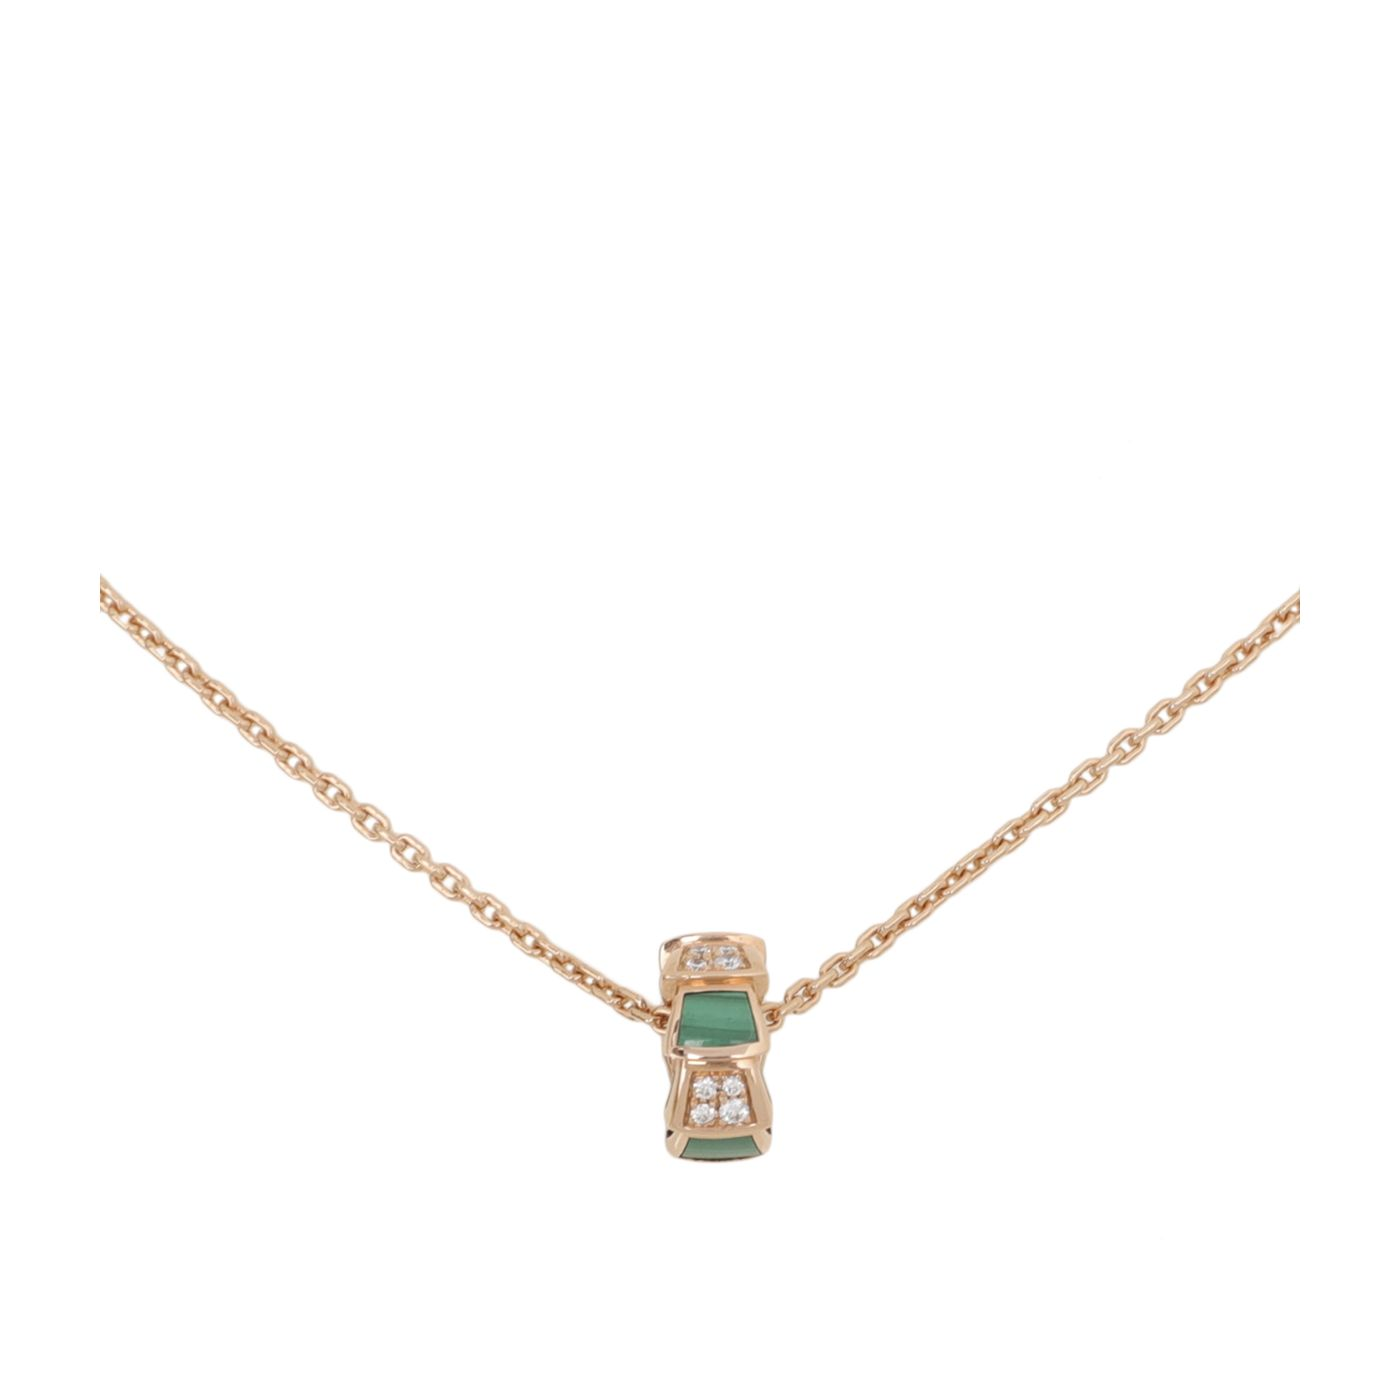 Bvlgari 18K Rose Gold Diamond Serpenti Viper Necklace